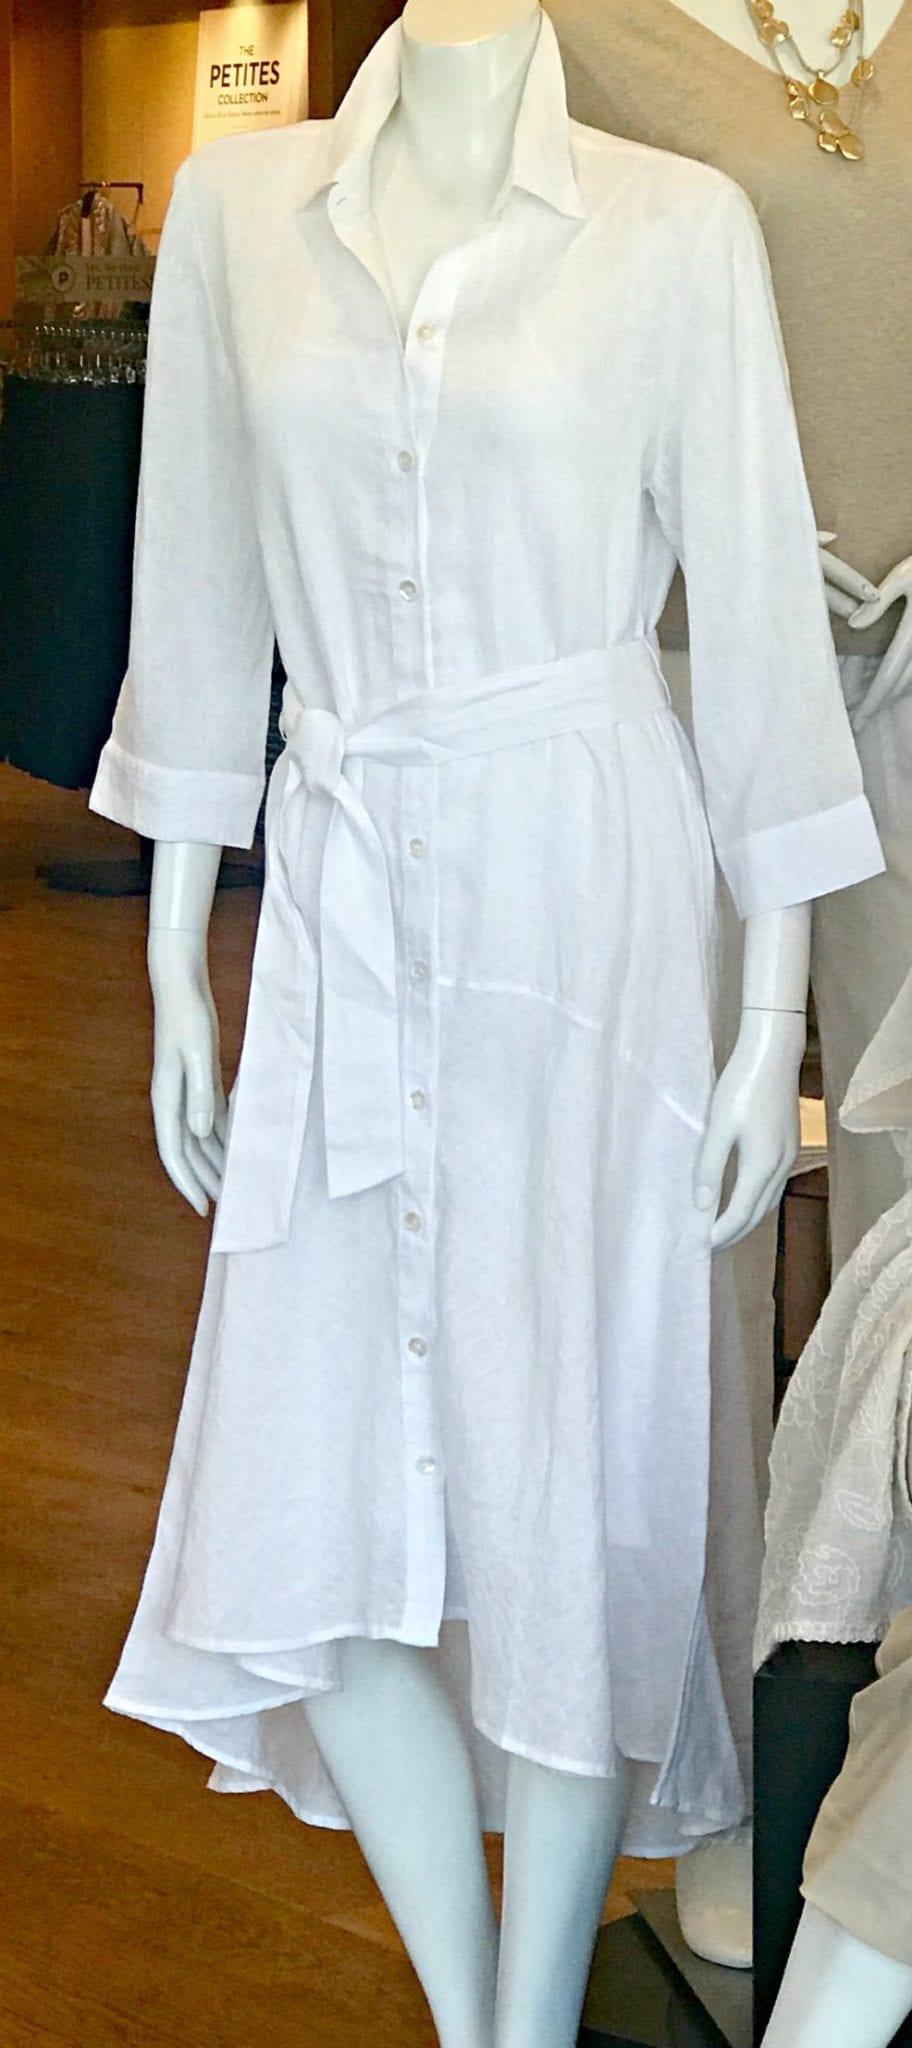 white linen dress from Chico's